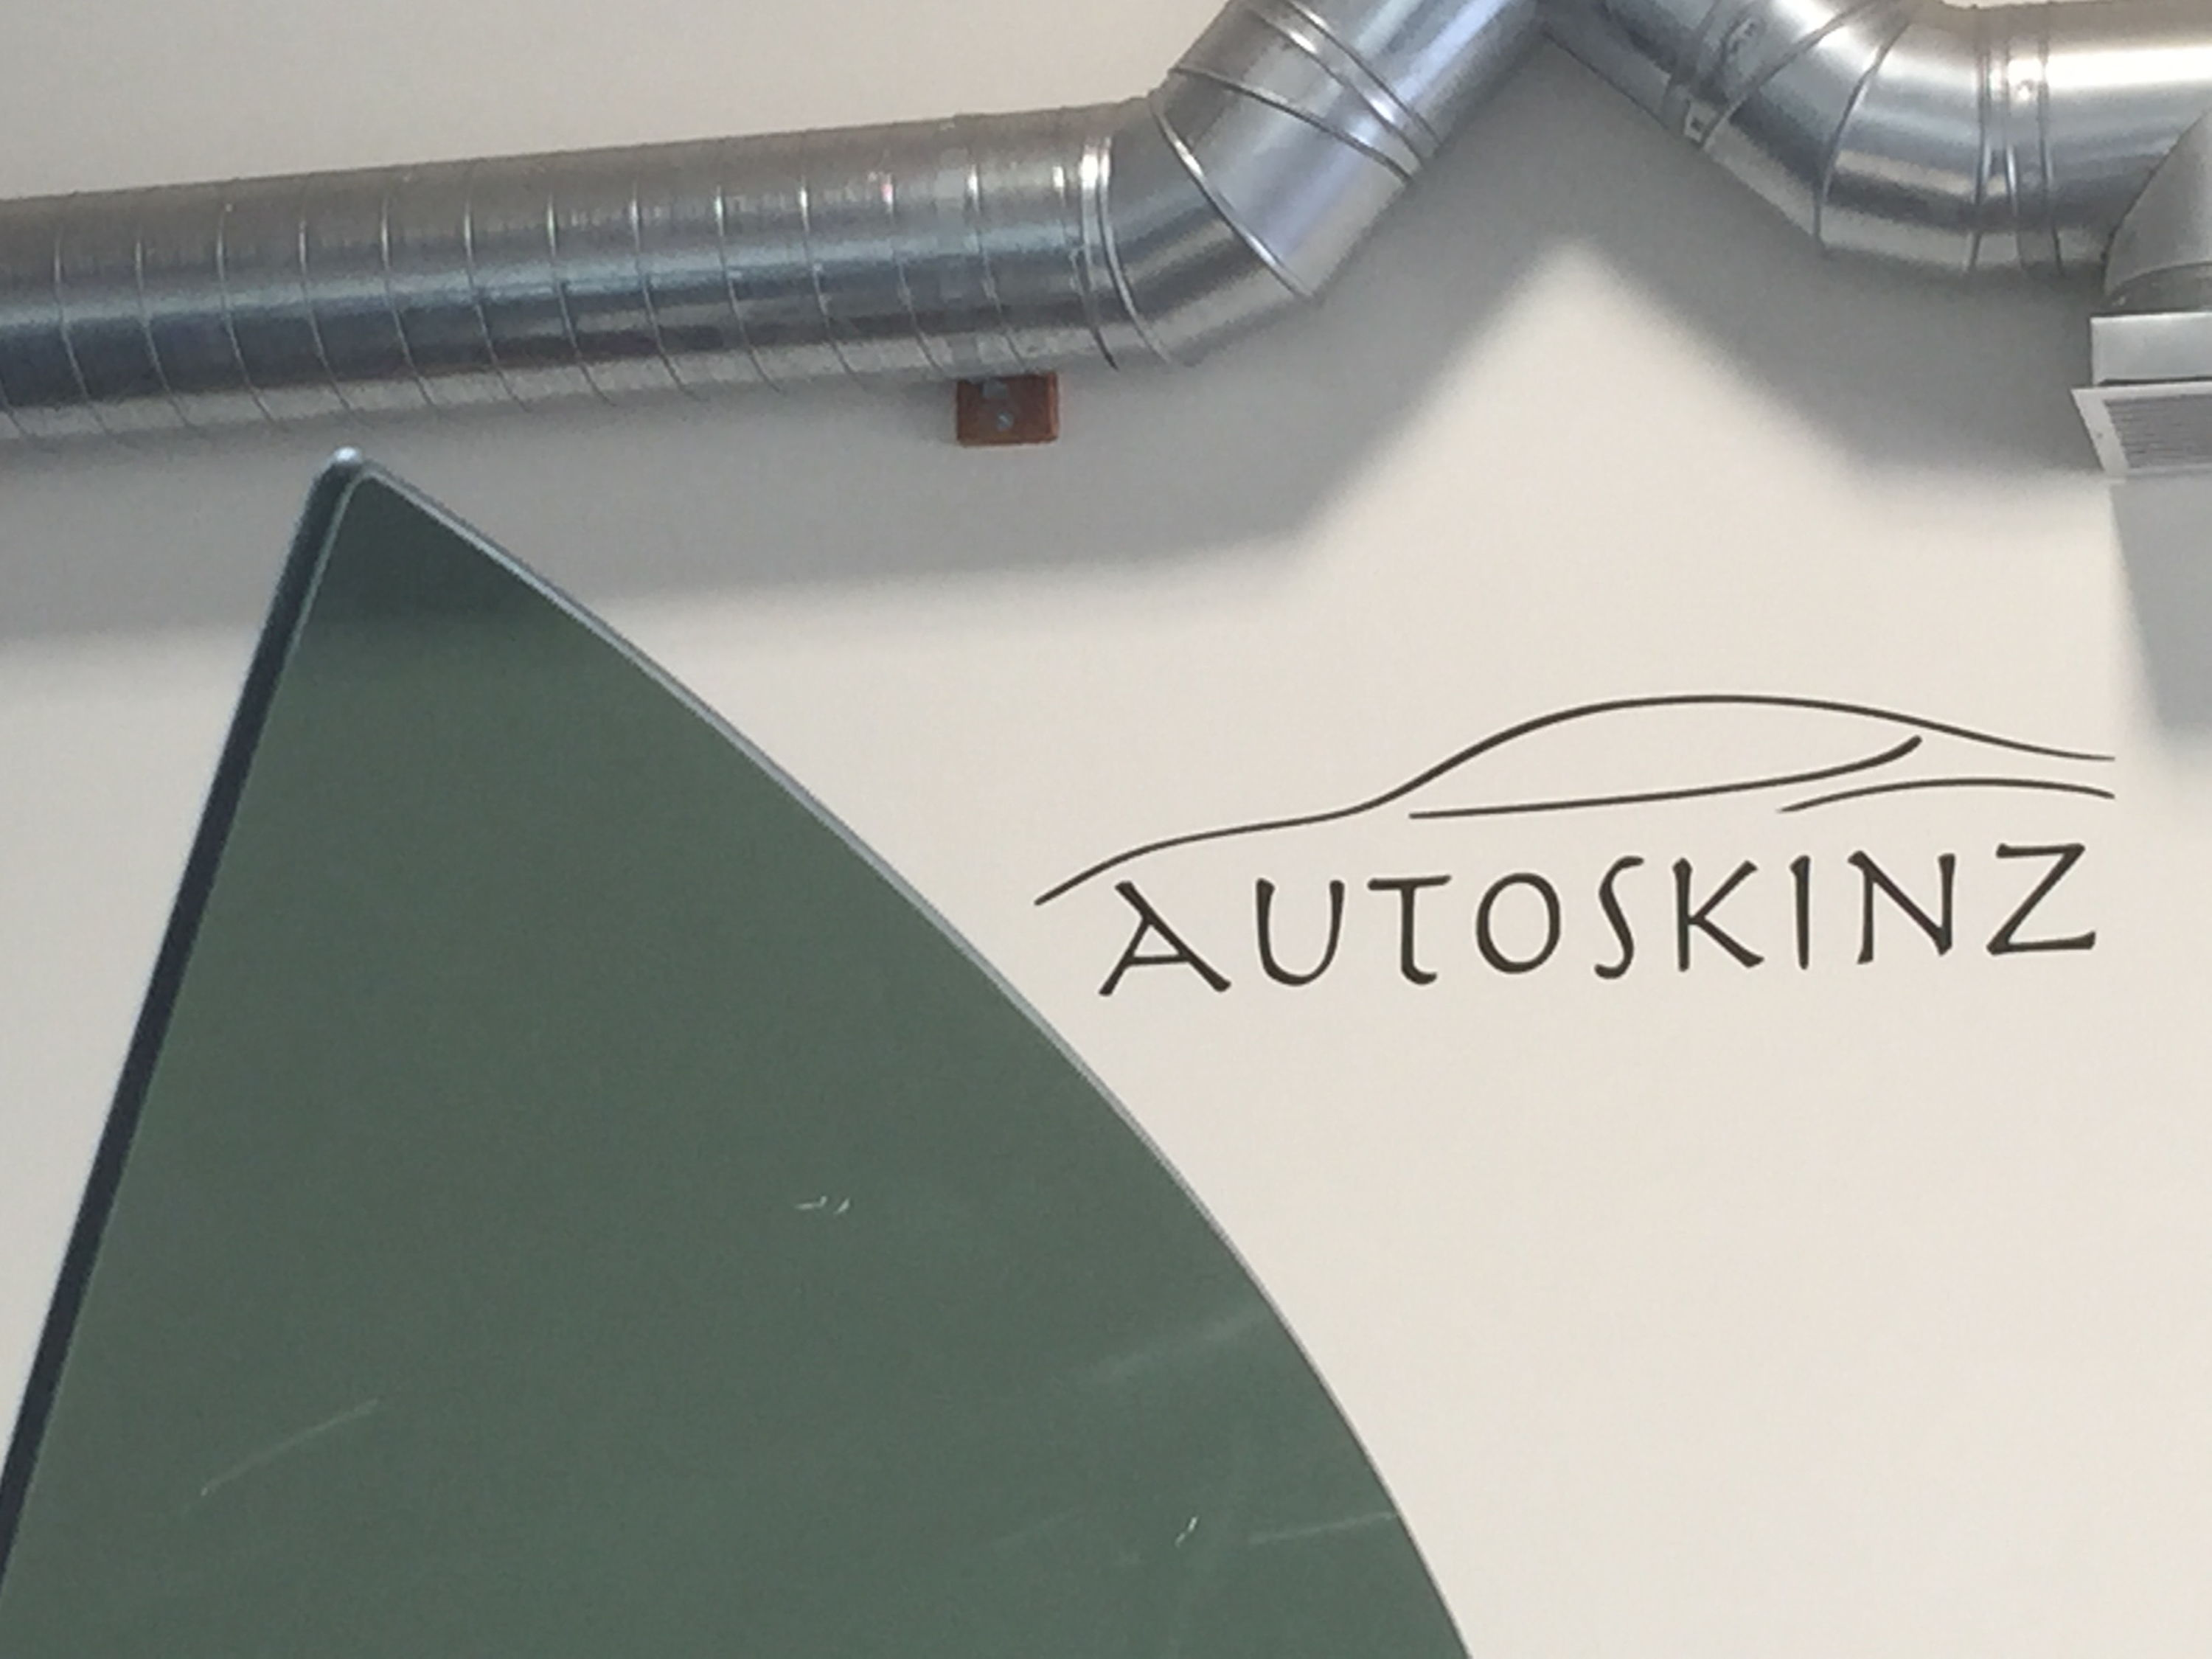 3M Crystalline with shaved edges for a factory feel and look | Autoskinz